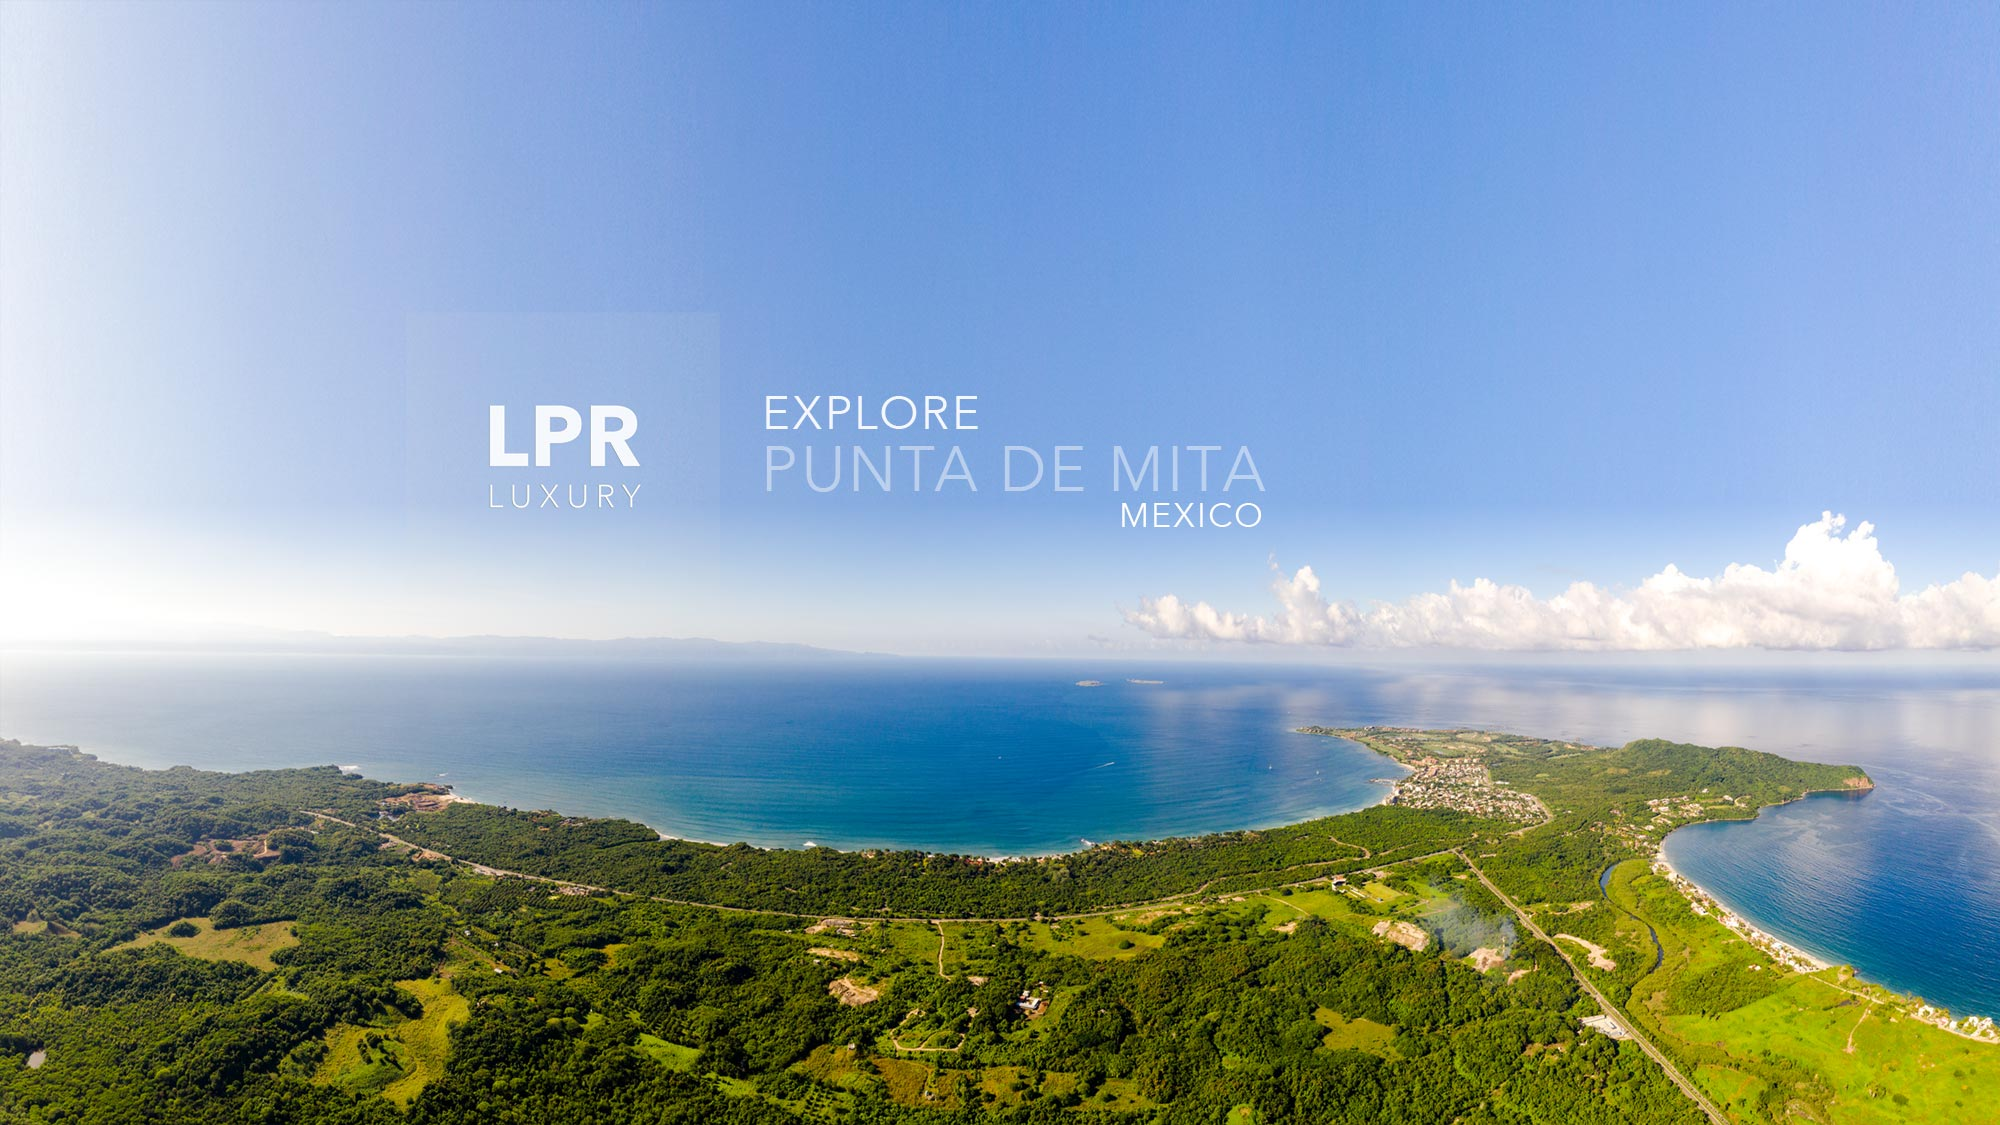 Explore Punta de Mita, Riviera Nayarit - Luxury real estate and vacation rentals North of Puerto Vallarta, Mexico